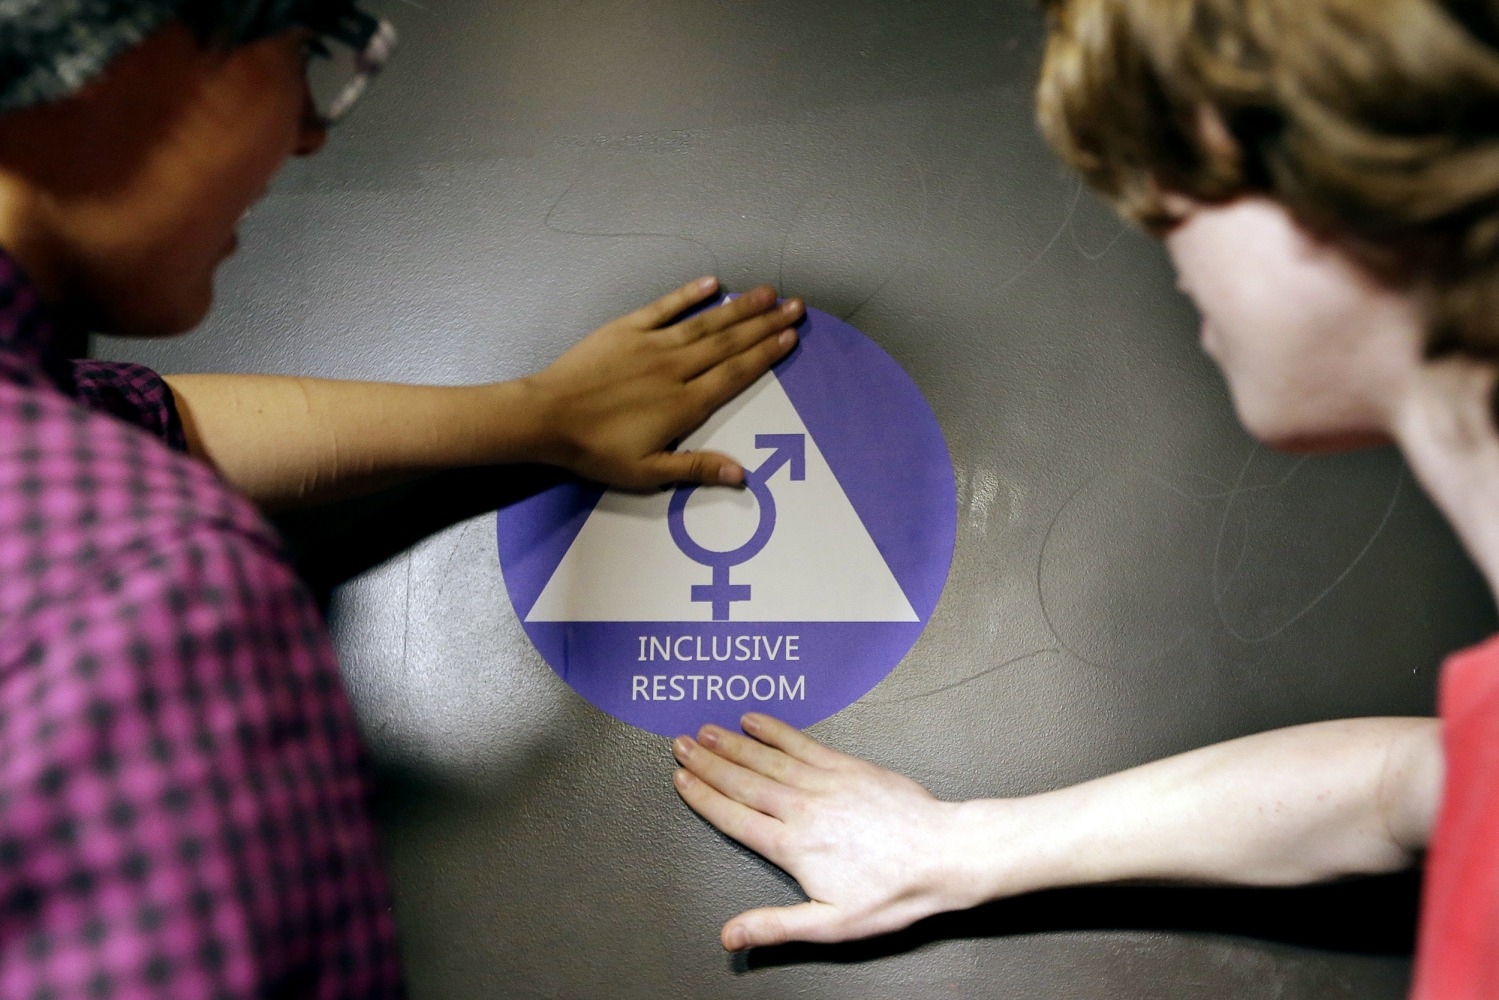 Destin Cramer and Noah Rice place a new sticker on the door at the ceremonial opening of a gender neutral bathroom at Nathan Hale high school. Transgender Bathroom Access to Extend to All Federal Buildings